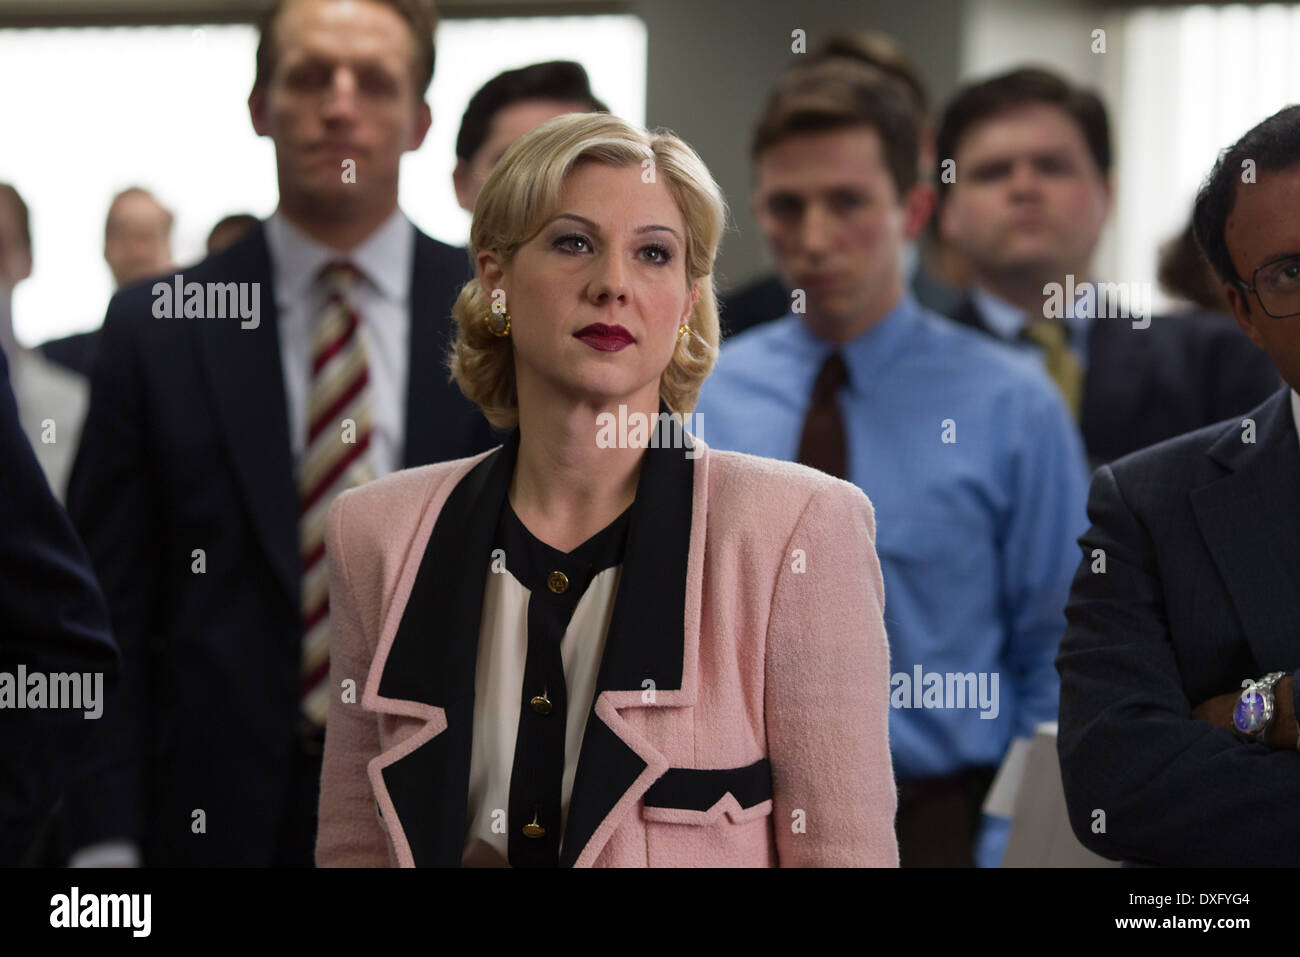 The Wolf of Wall Street Stock Photo: 67963060 - Alamy